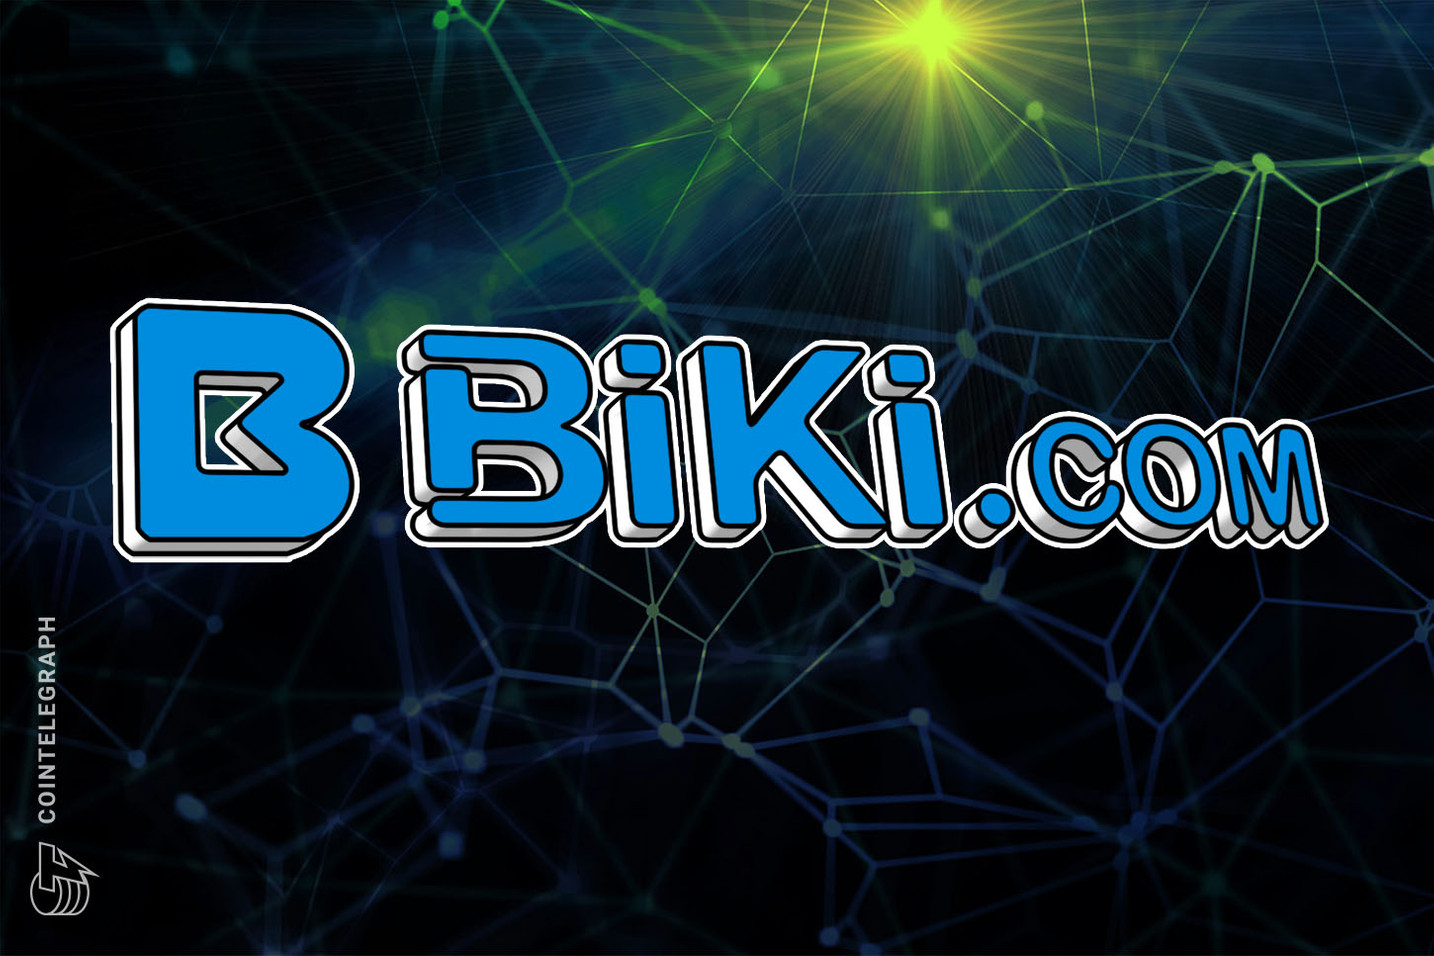 Huobi Co-Founder Jun Du Invests USD 5M on  New Exchange BiKi.com